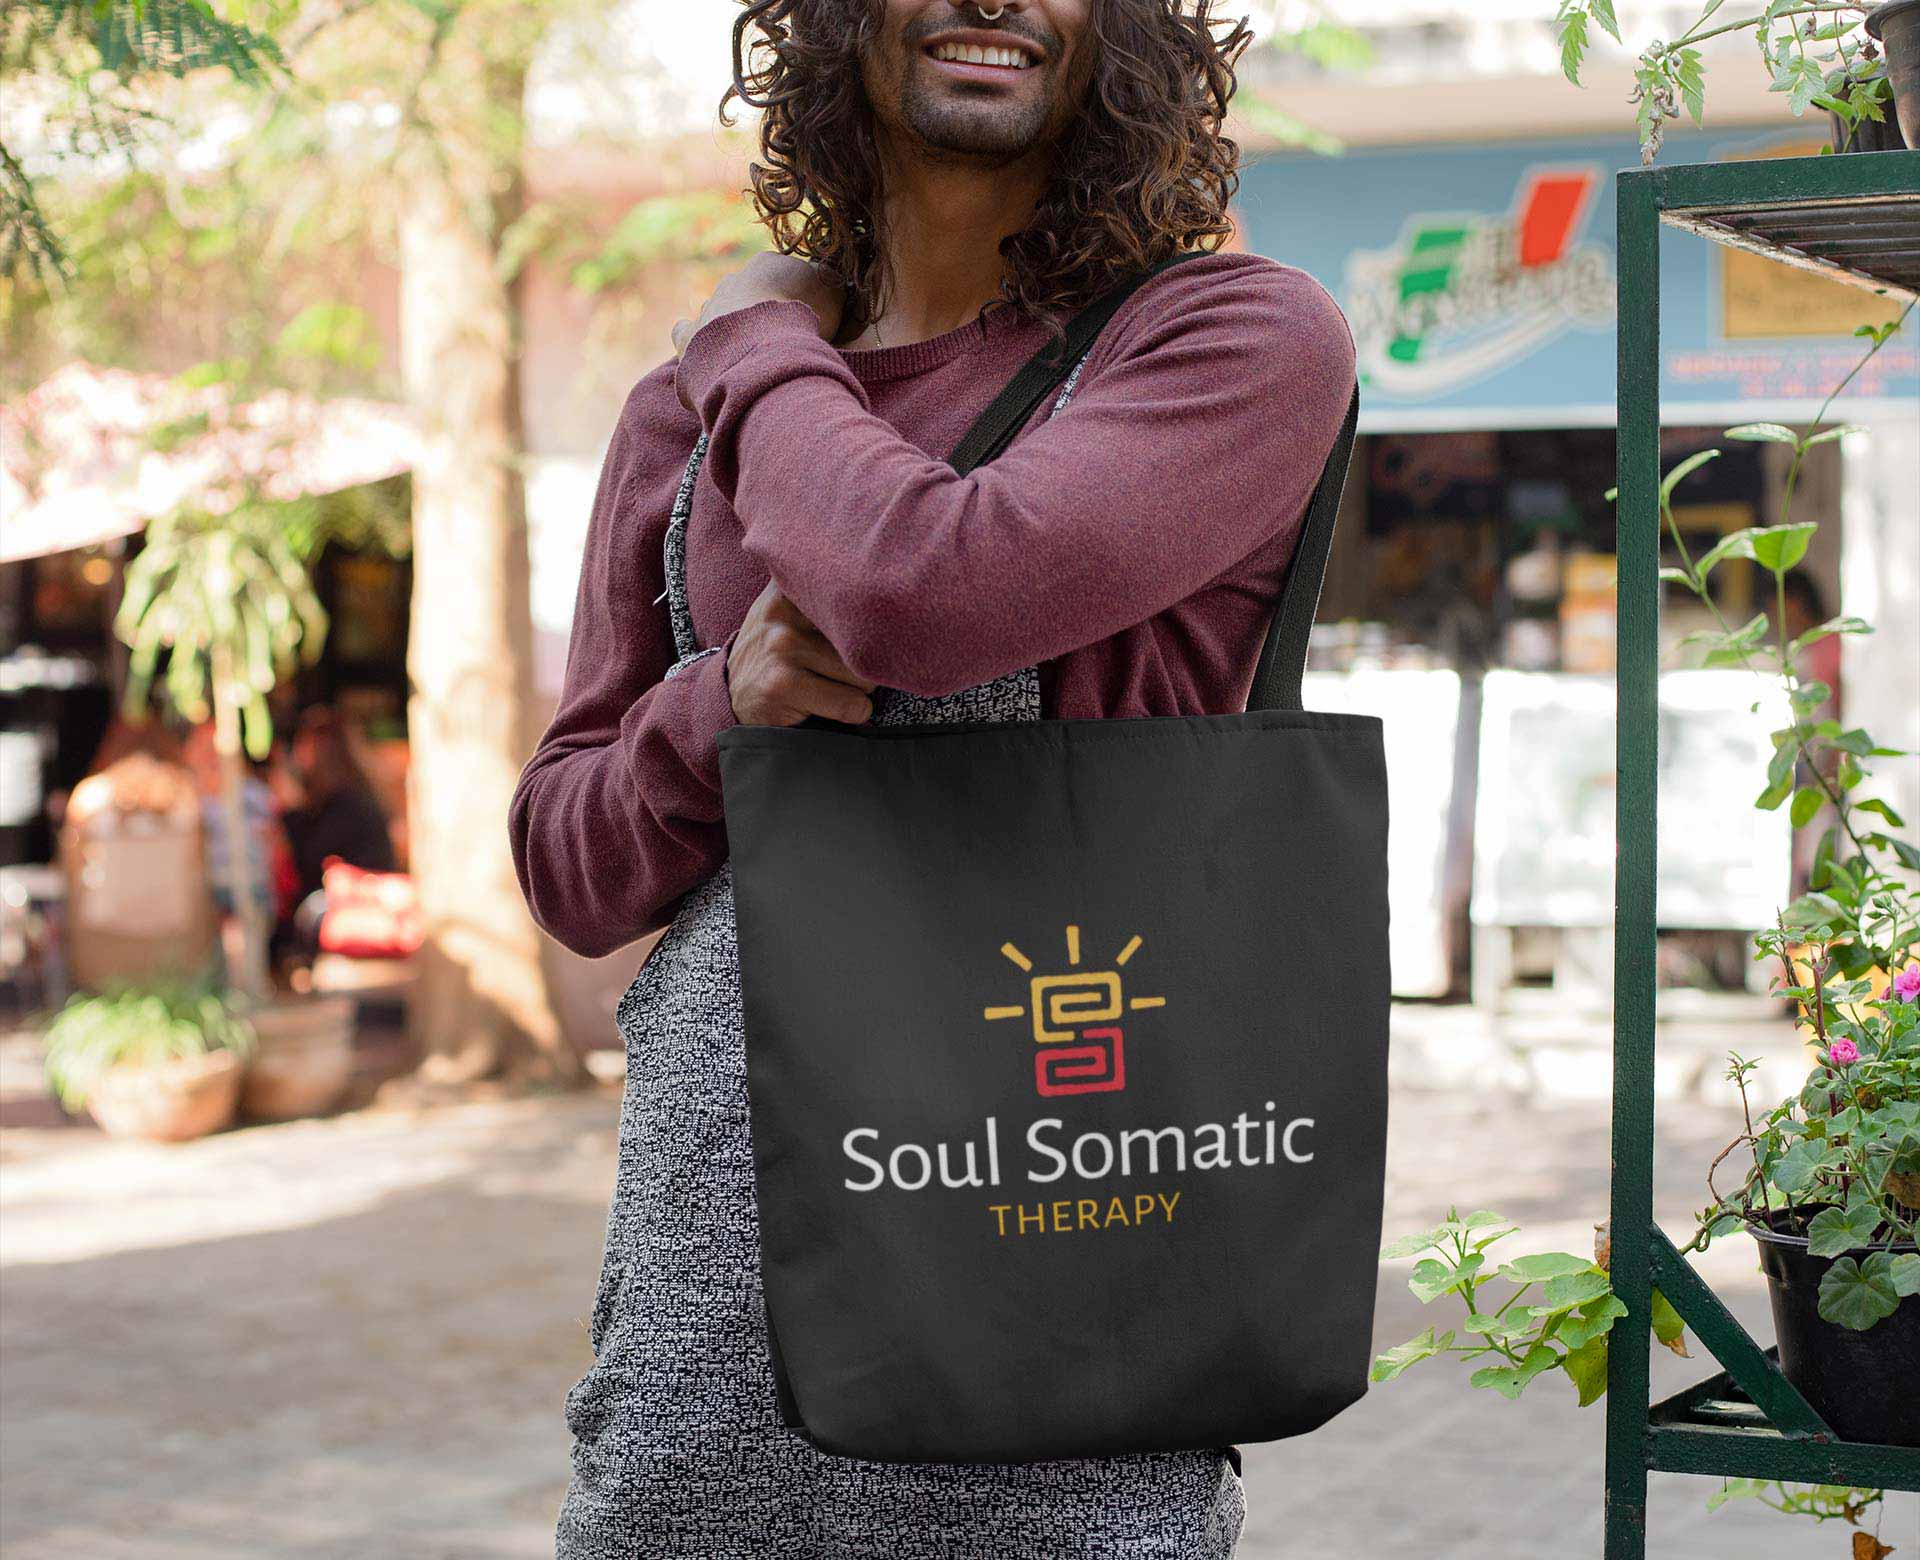 Soul Somatic logo on tote bag